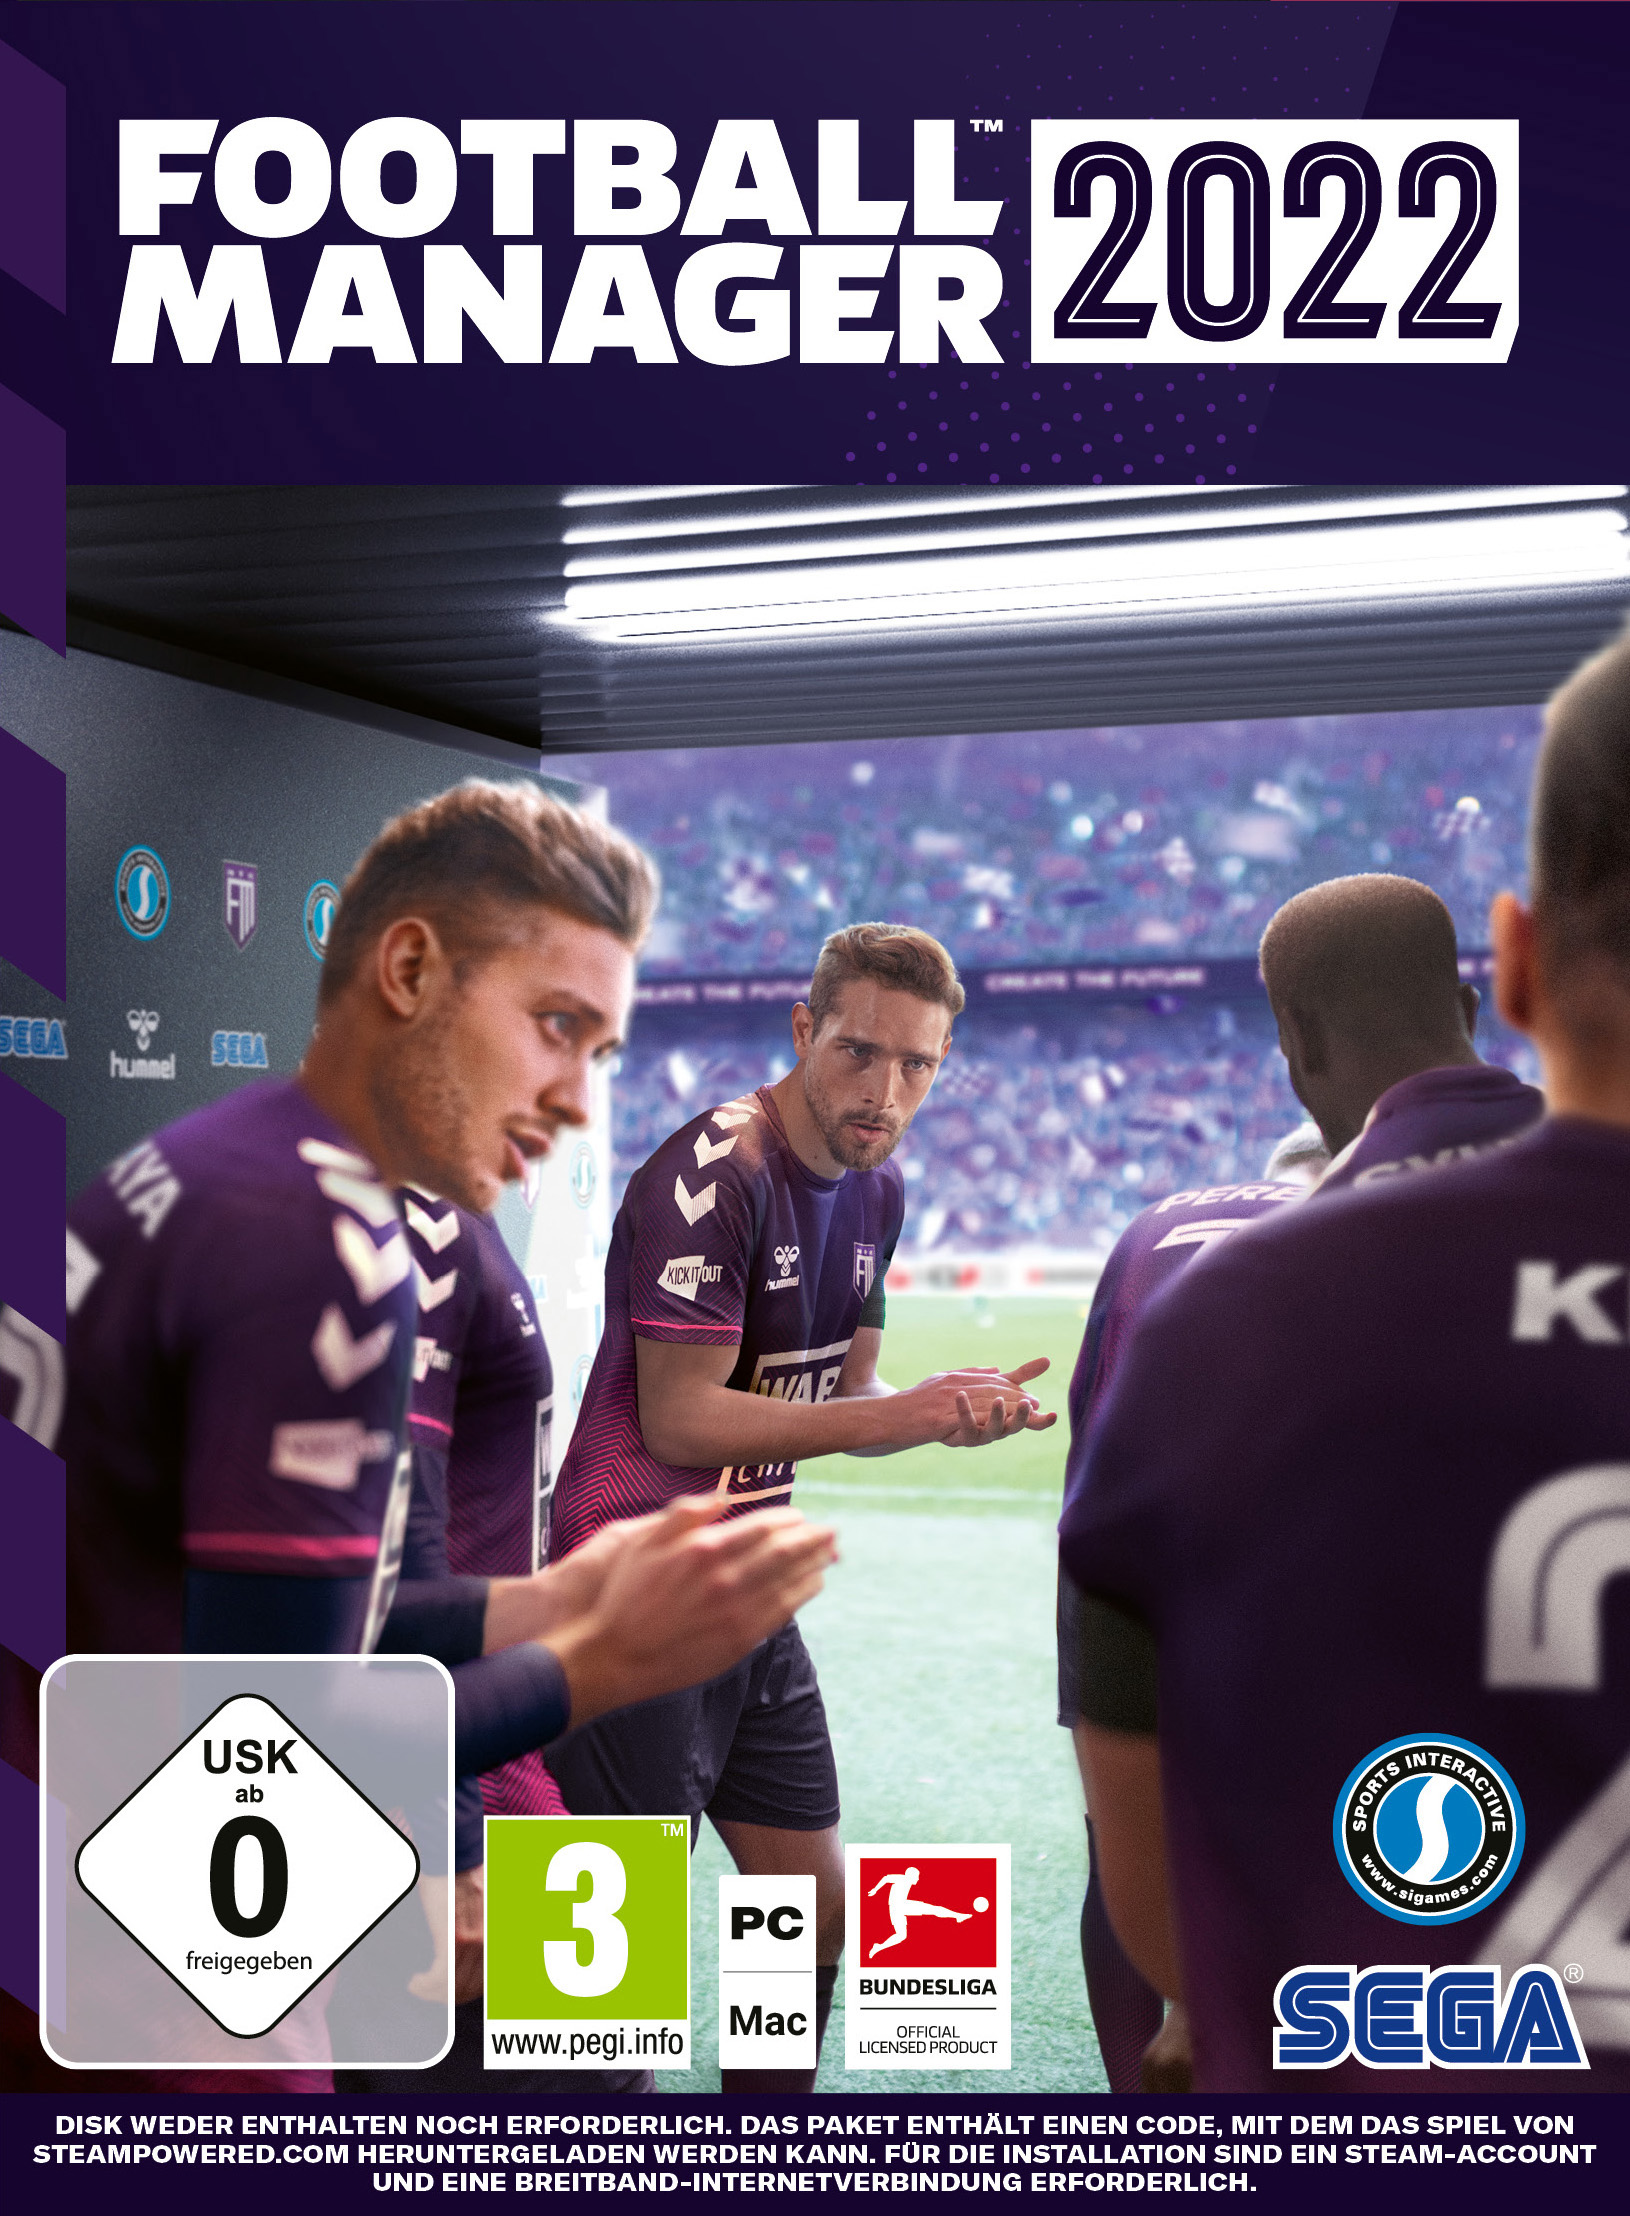 Football_Manager_2022_(PC)_USK_0